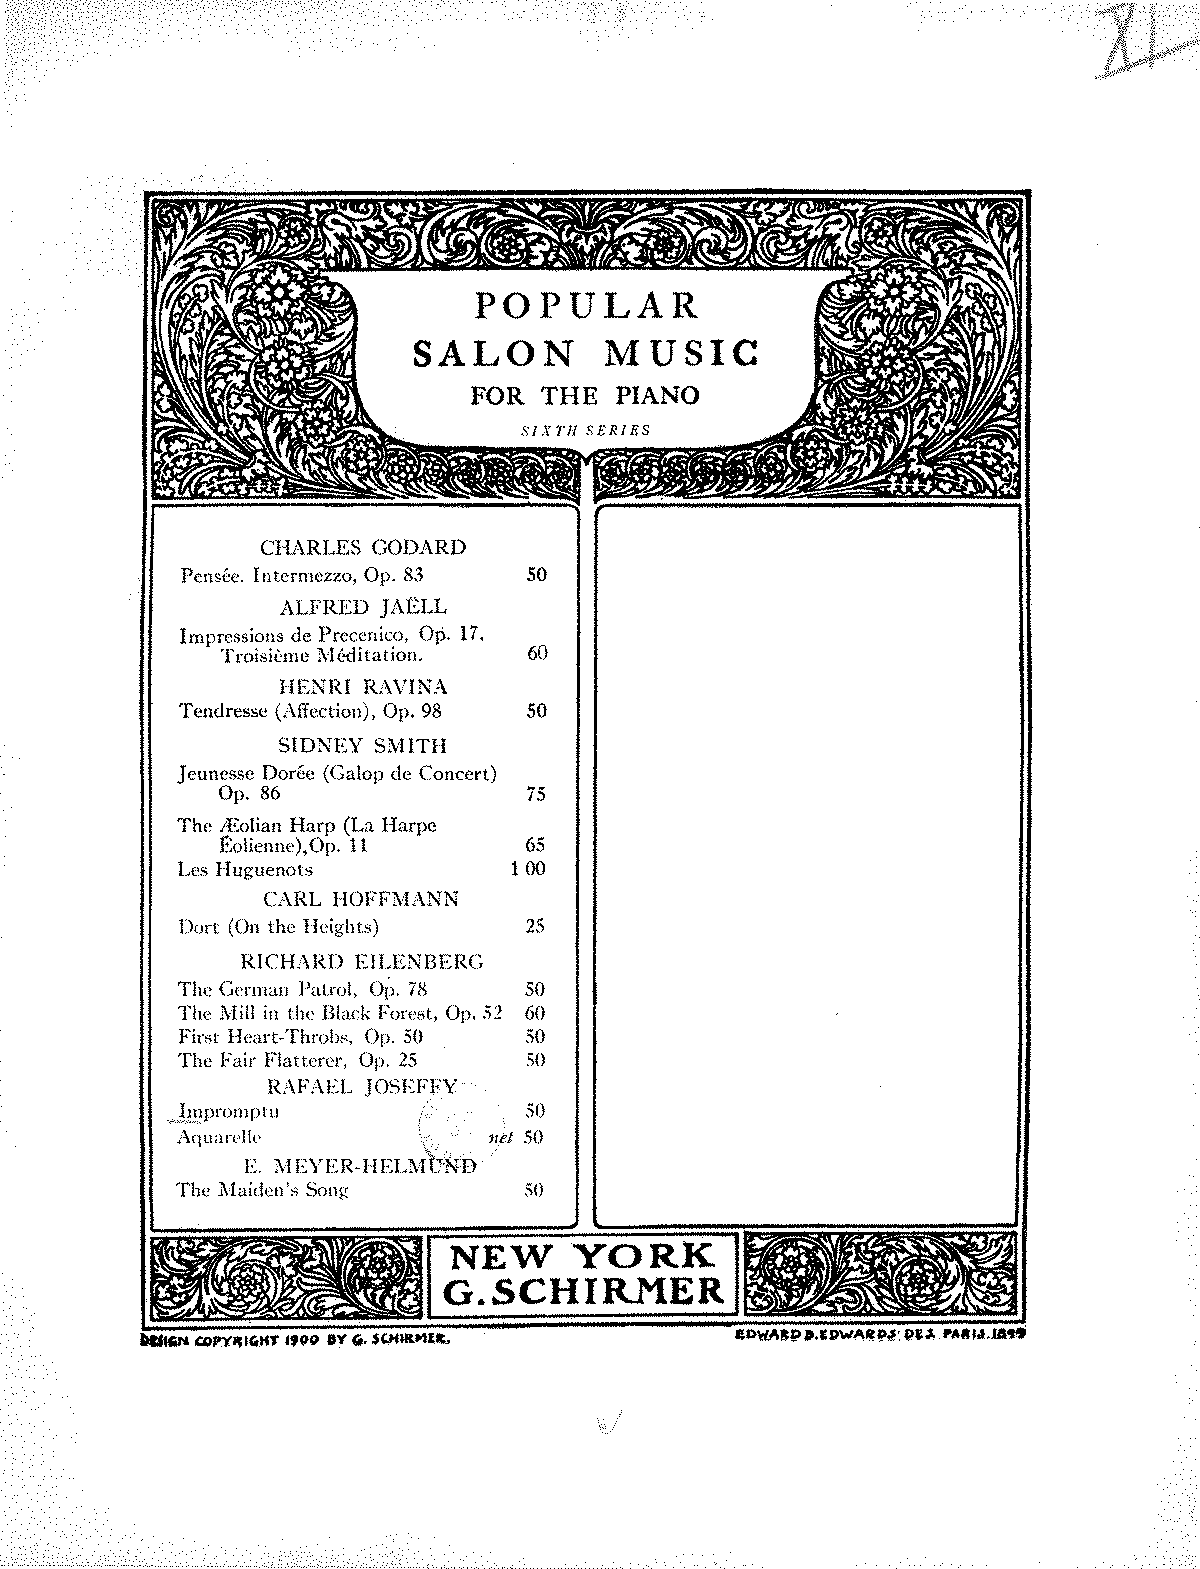 SIBLEY1802.5334.7bab-39087012348191impromptu color covers.pdf